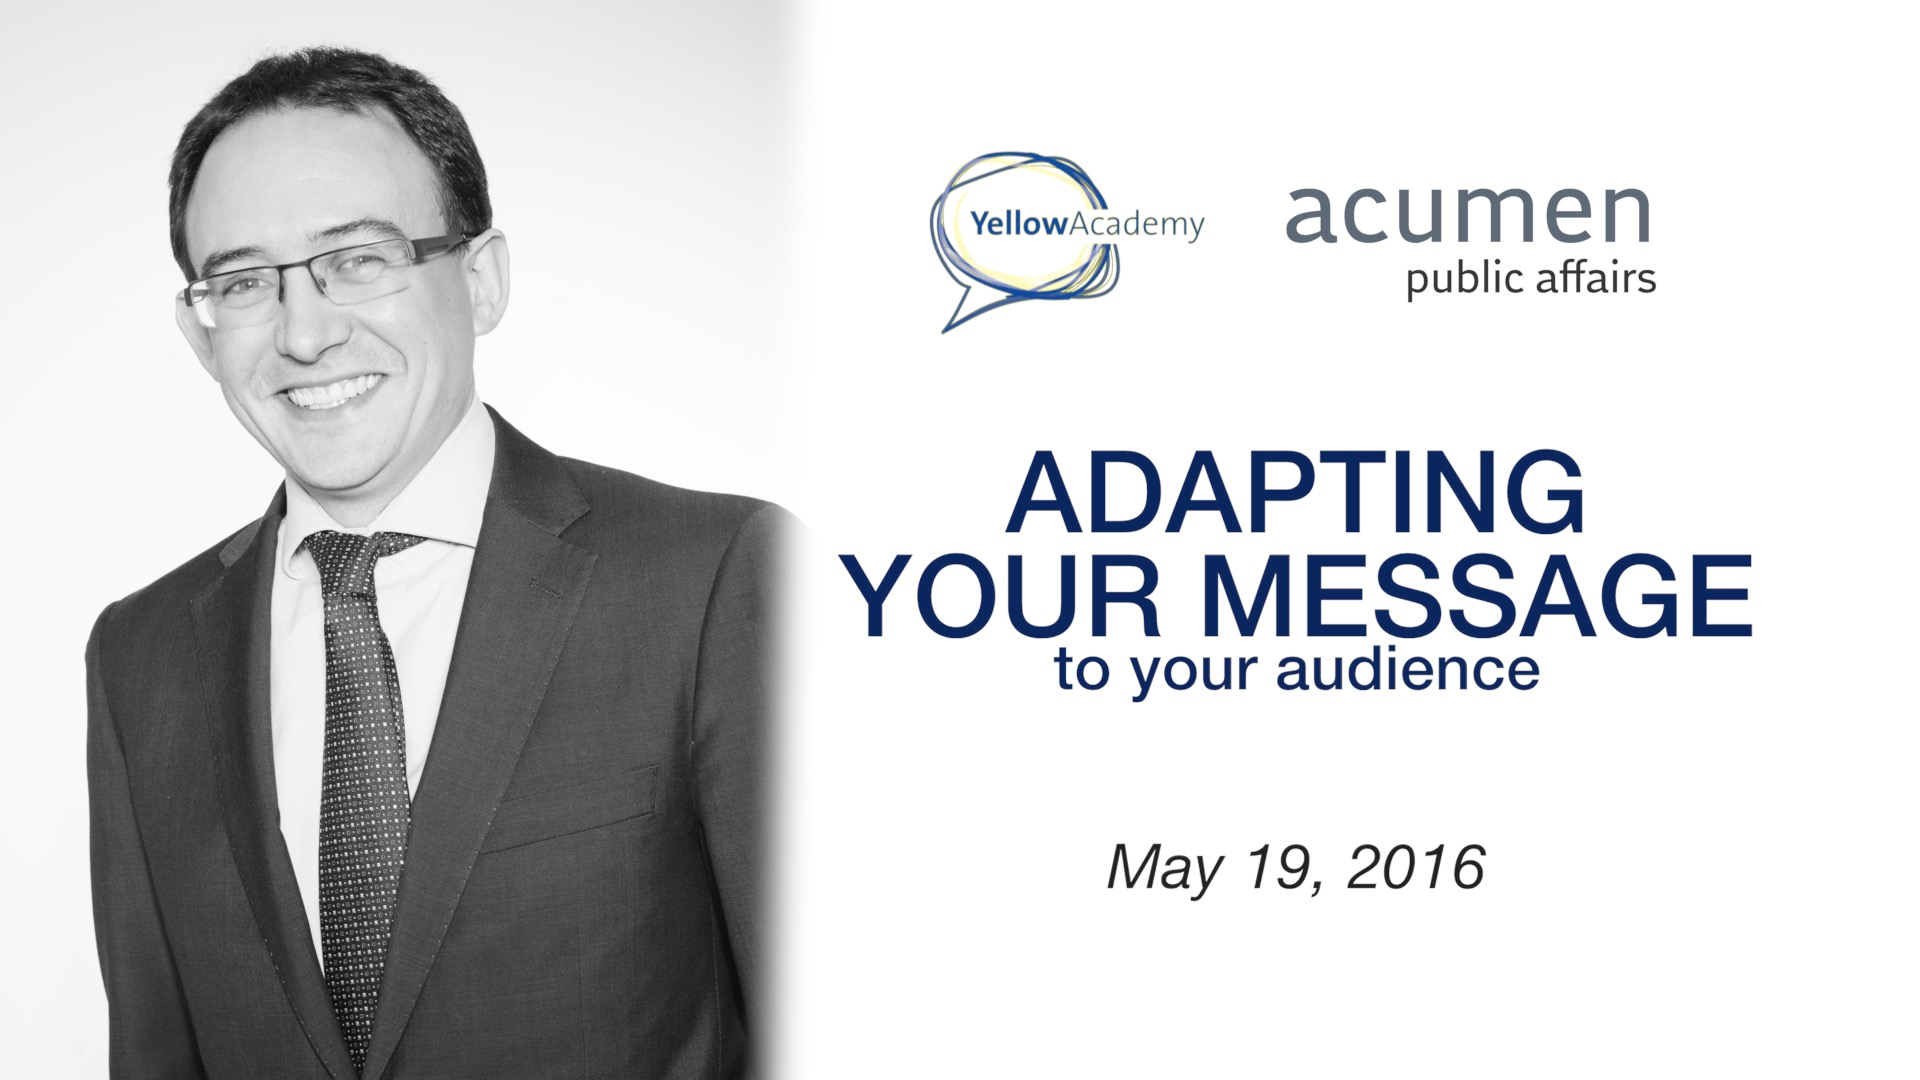 Giles Keane: Adapting your message to your audience